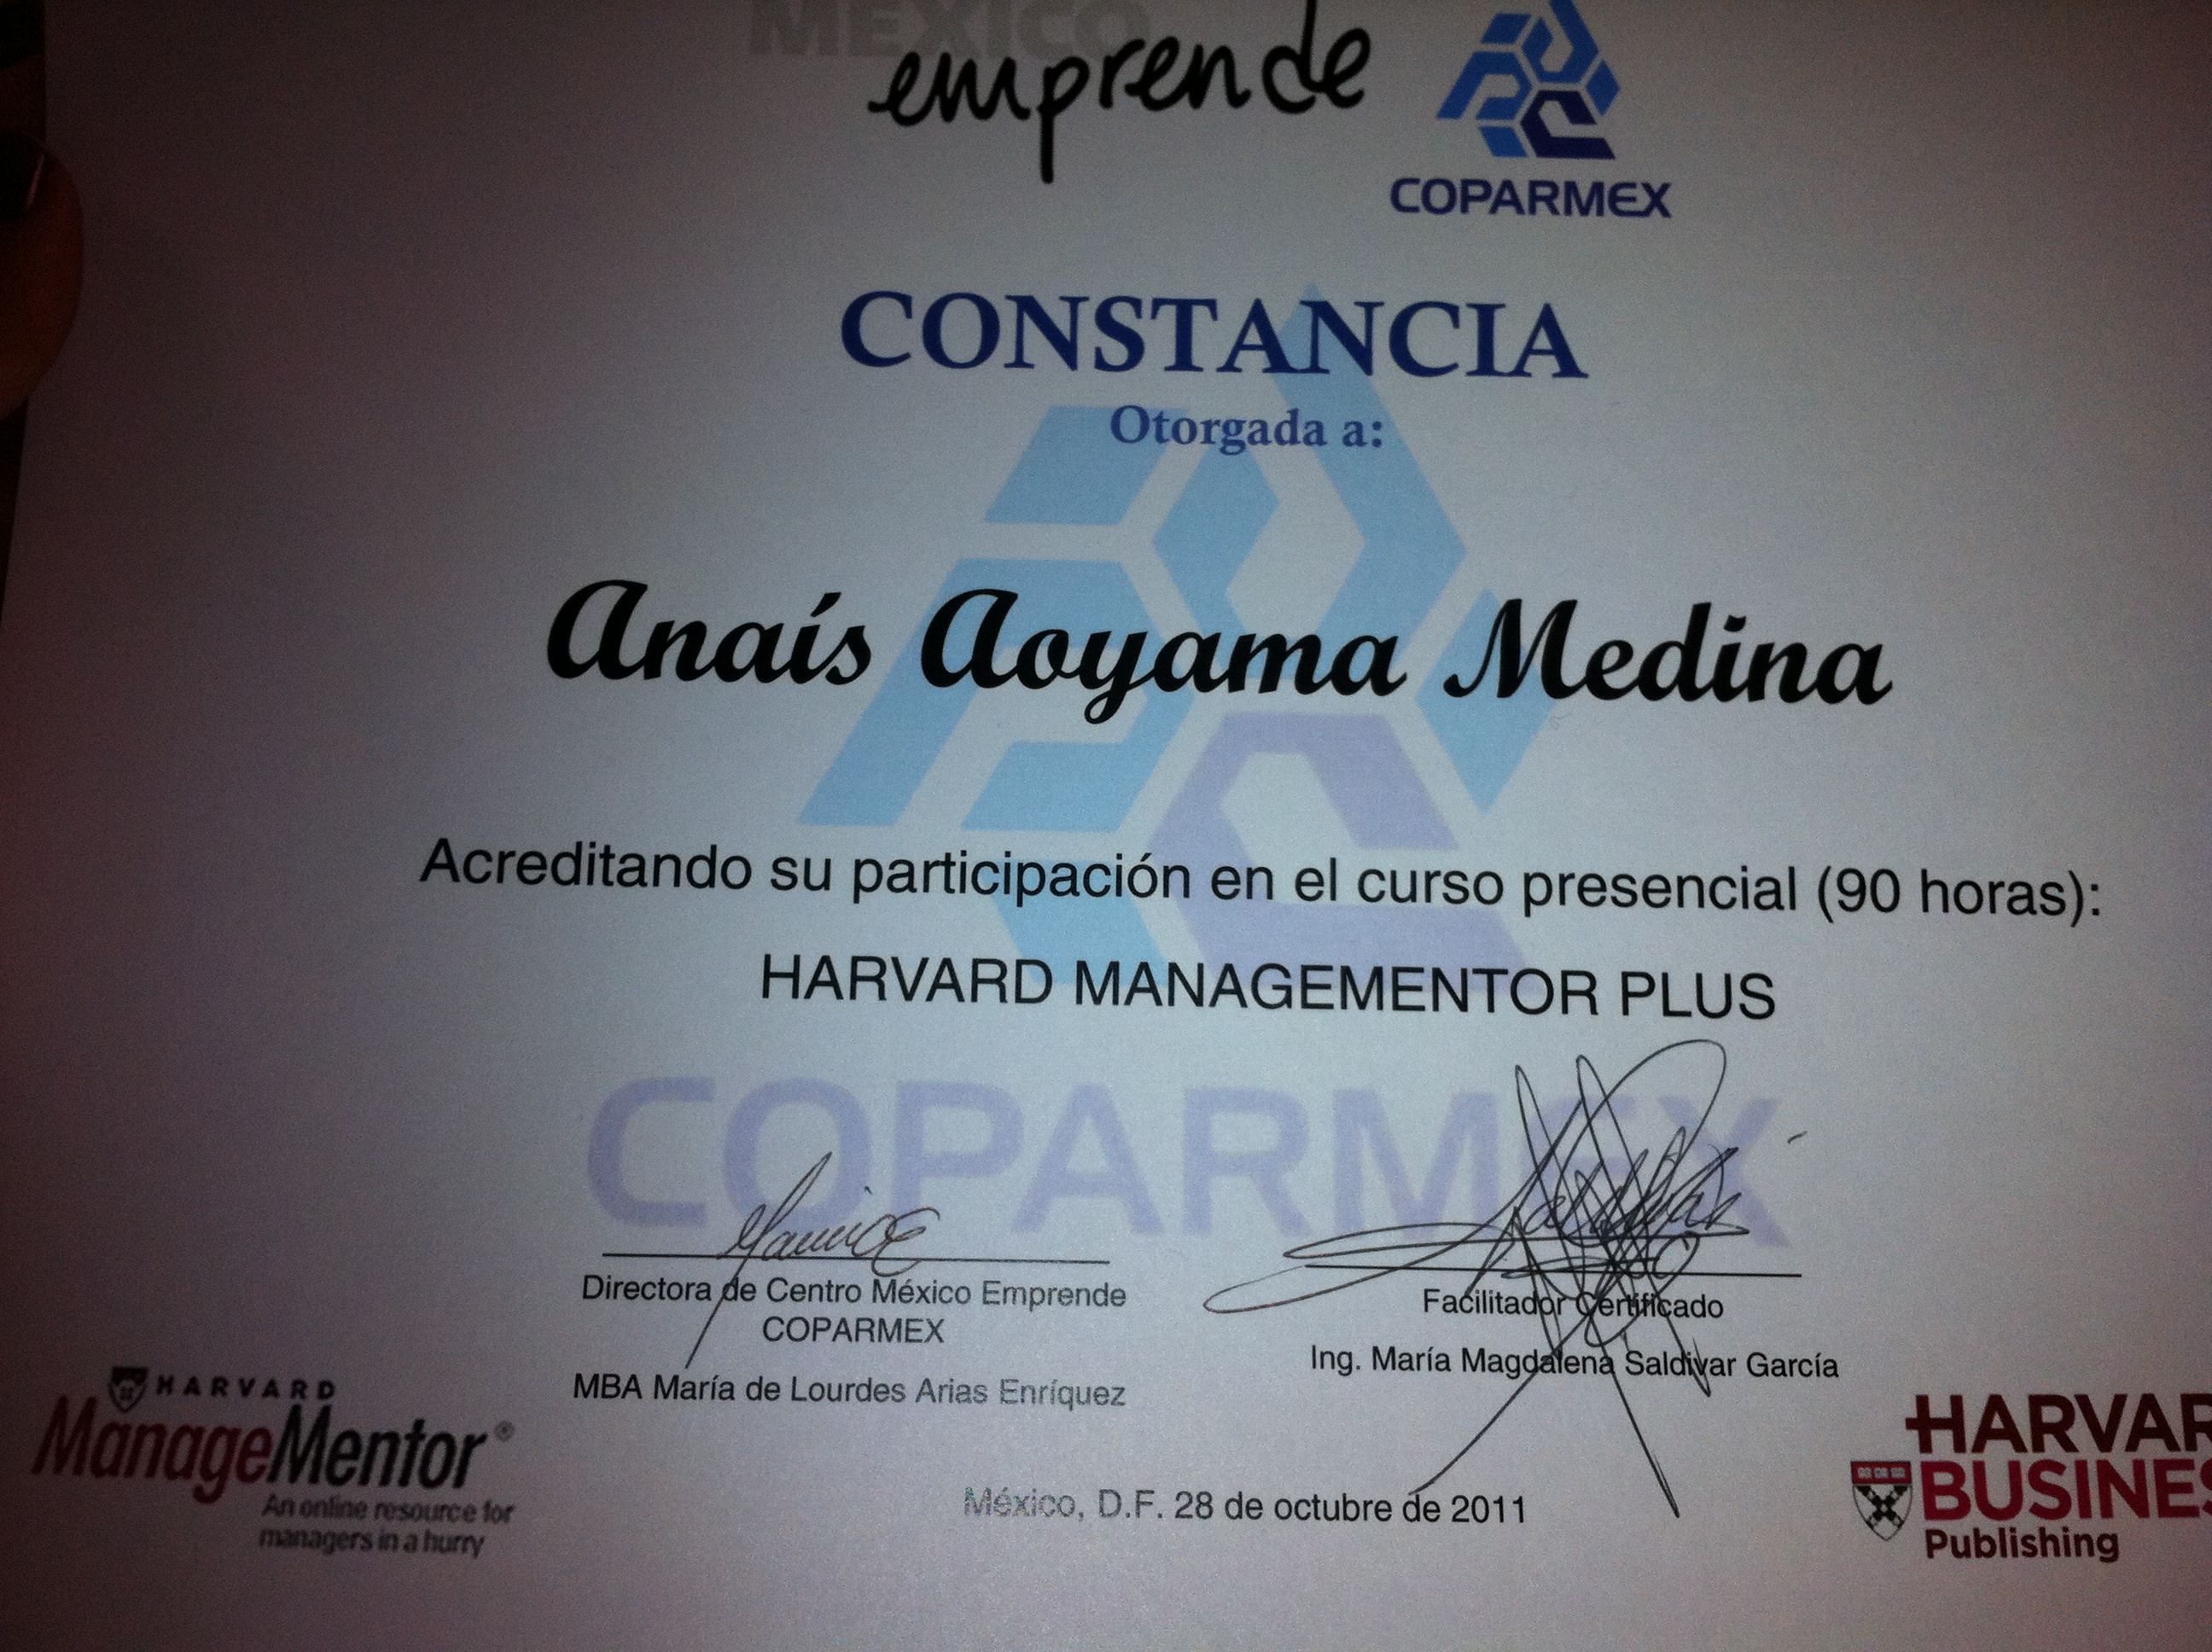 DIPLOMADO HARVARD MANAGE MENTOR PLUS